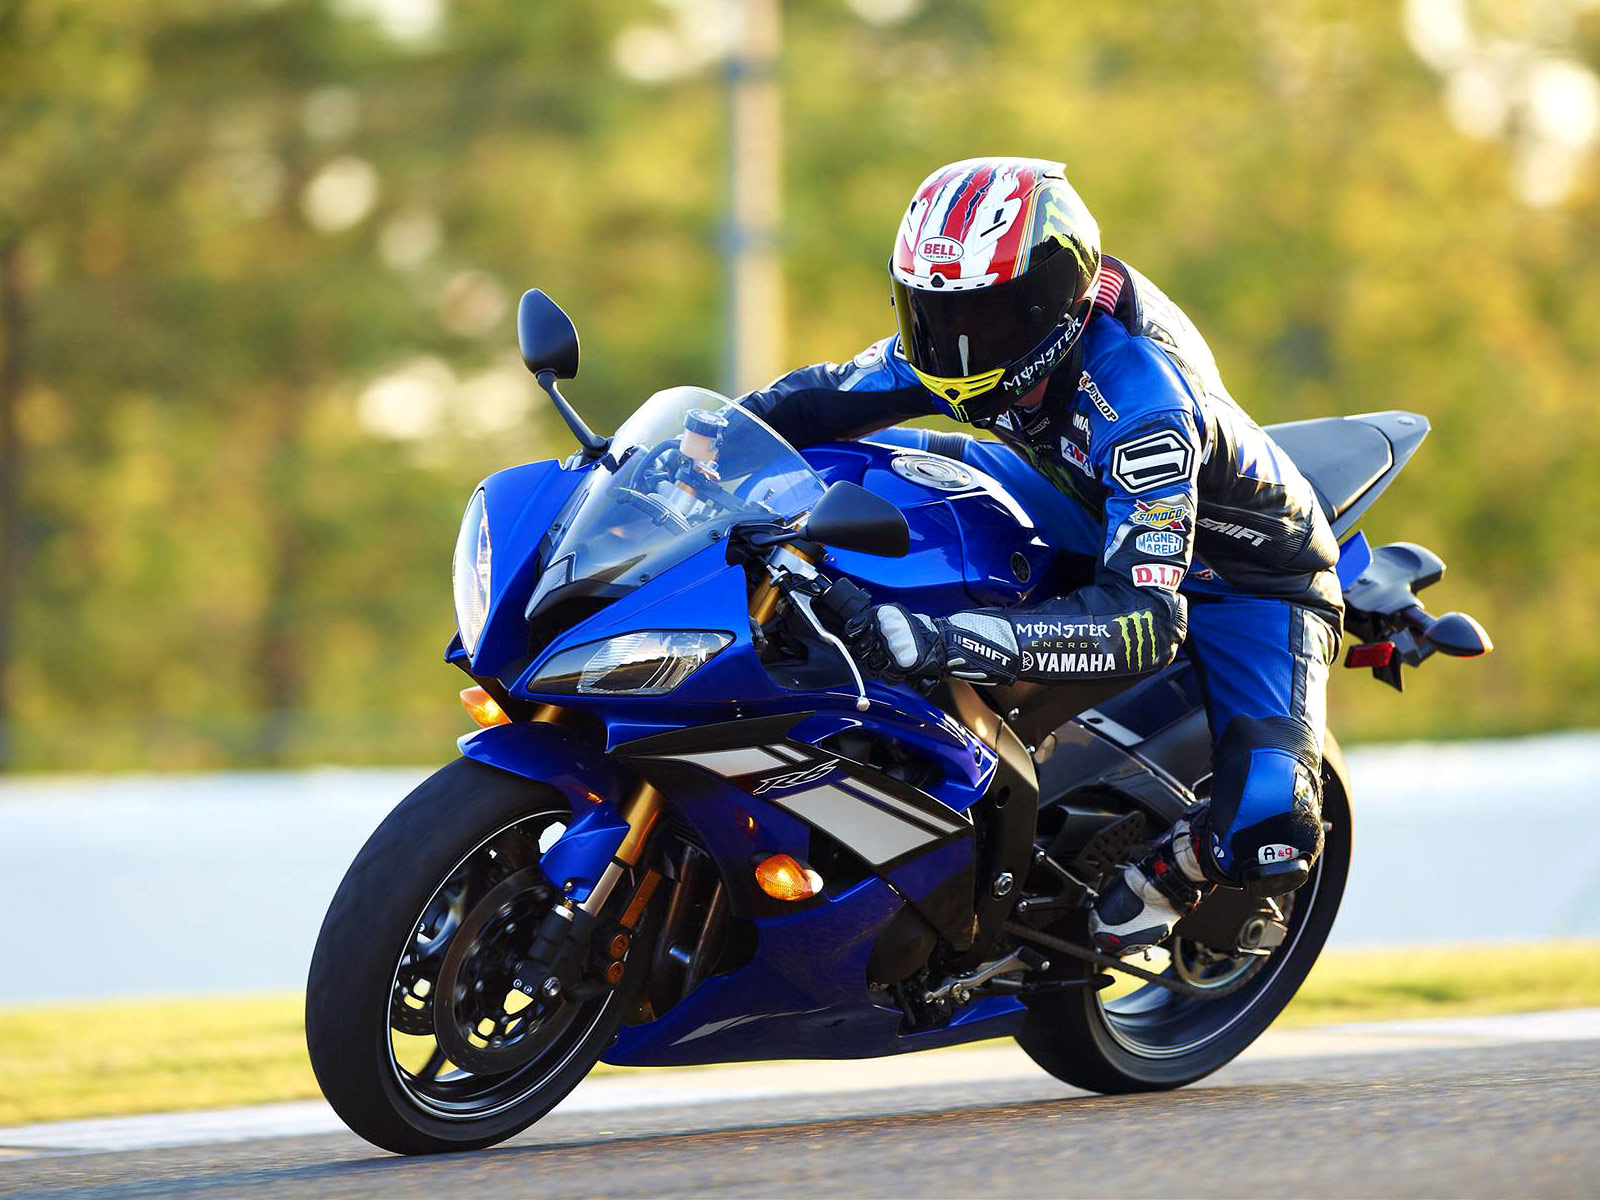 Motorcycle photos, specifications review, insurance, lawyers